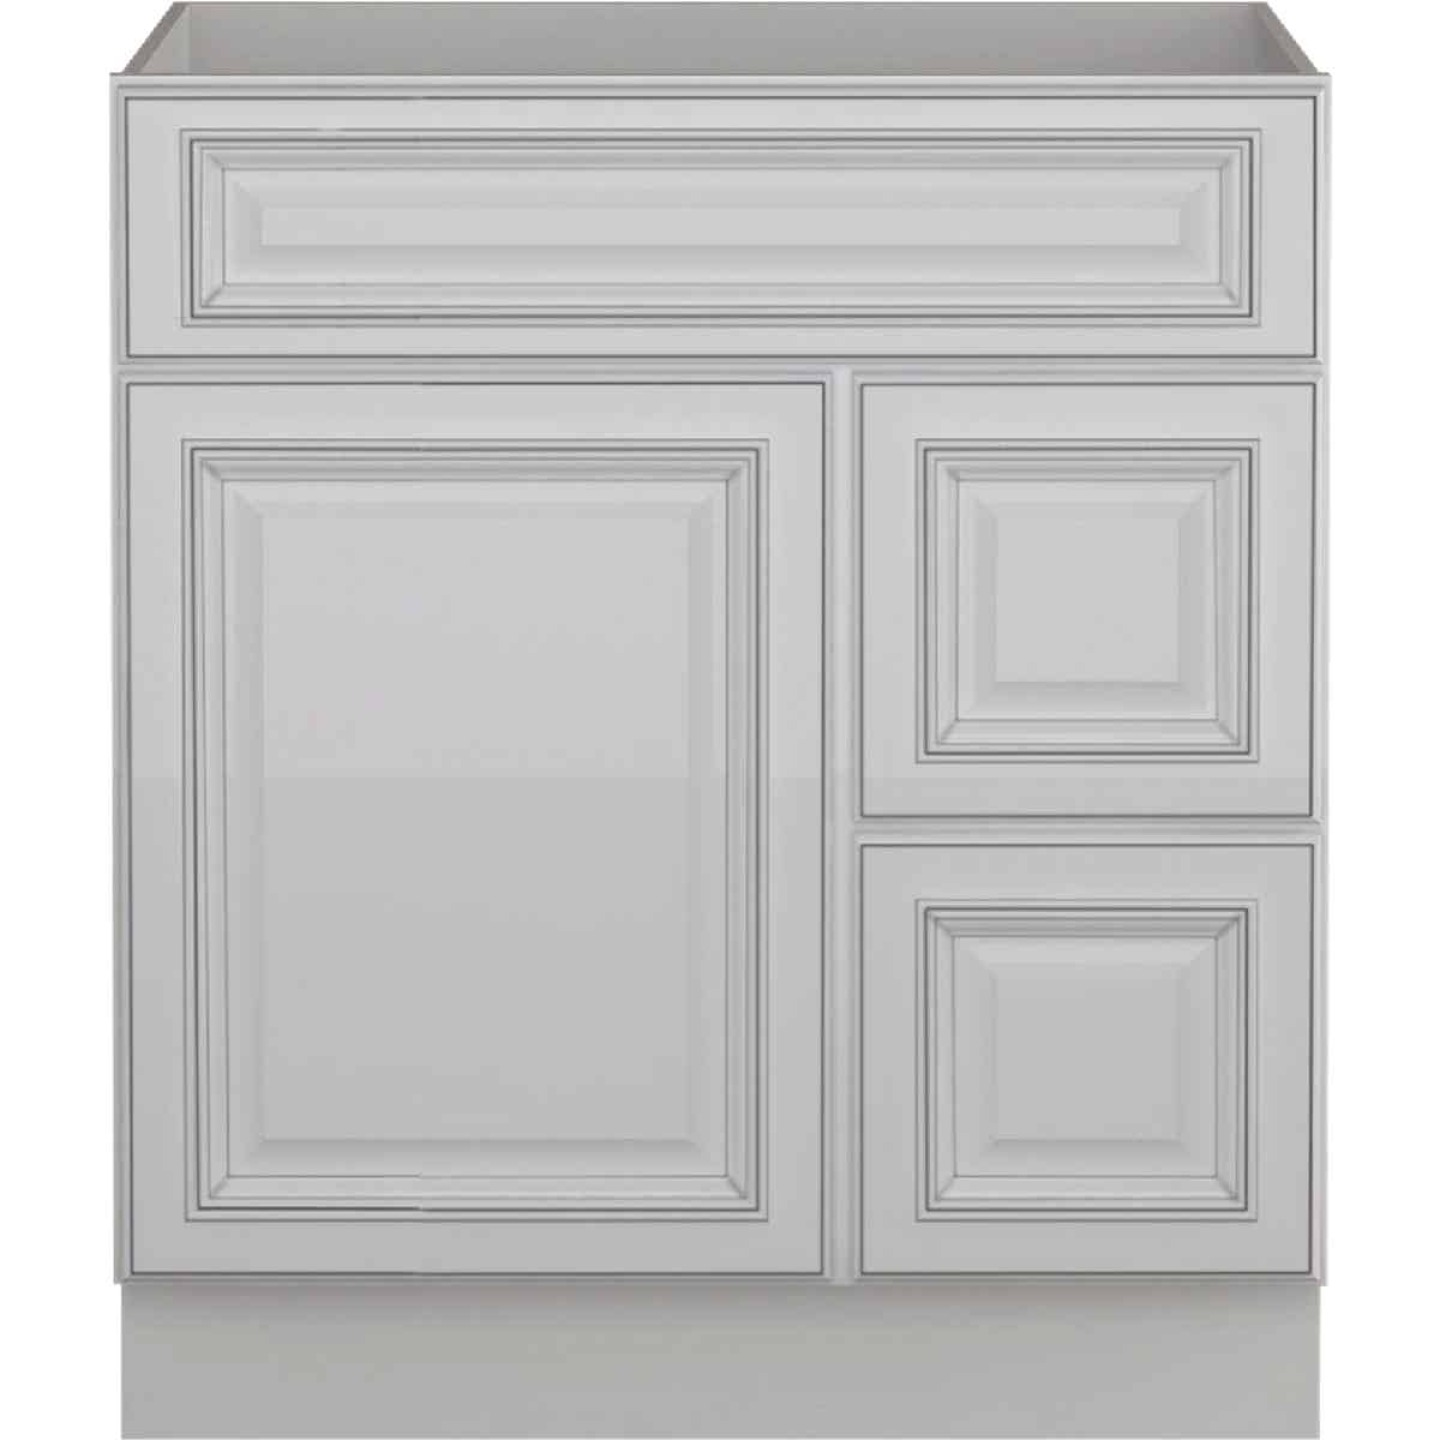 Sunny Wood Riley White with Dover Glaze 30 In. W x 34-1/2 In. H x 21 In. D Vanity Base, 1 Door/RH 2 Drawer Image 1